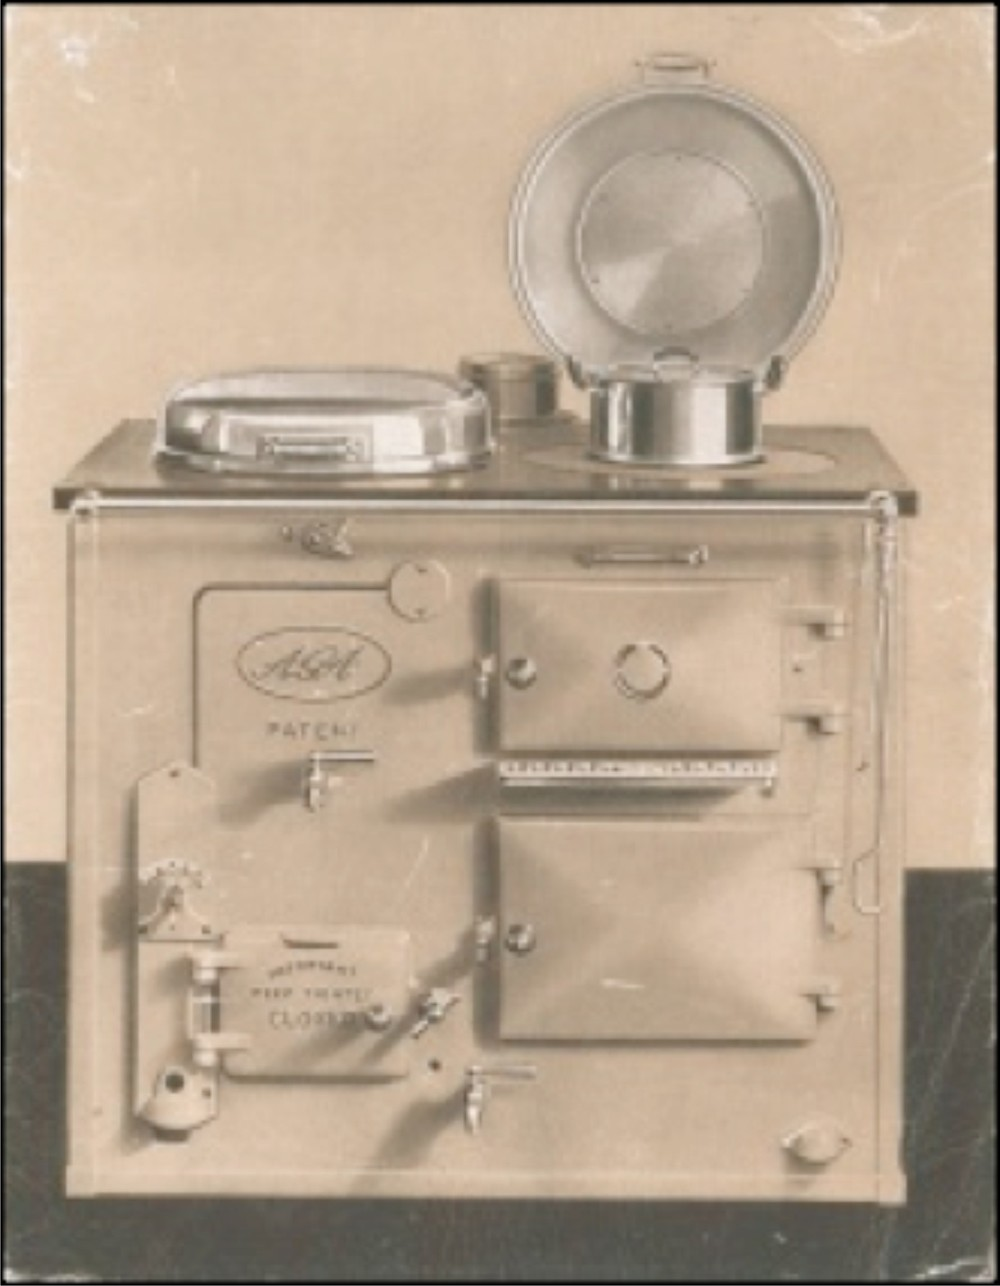 old aga cooker.jpg